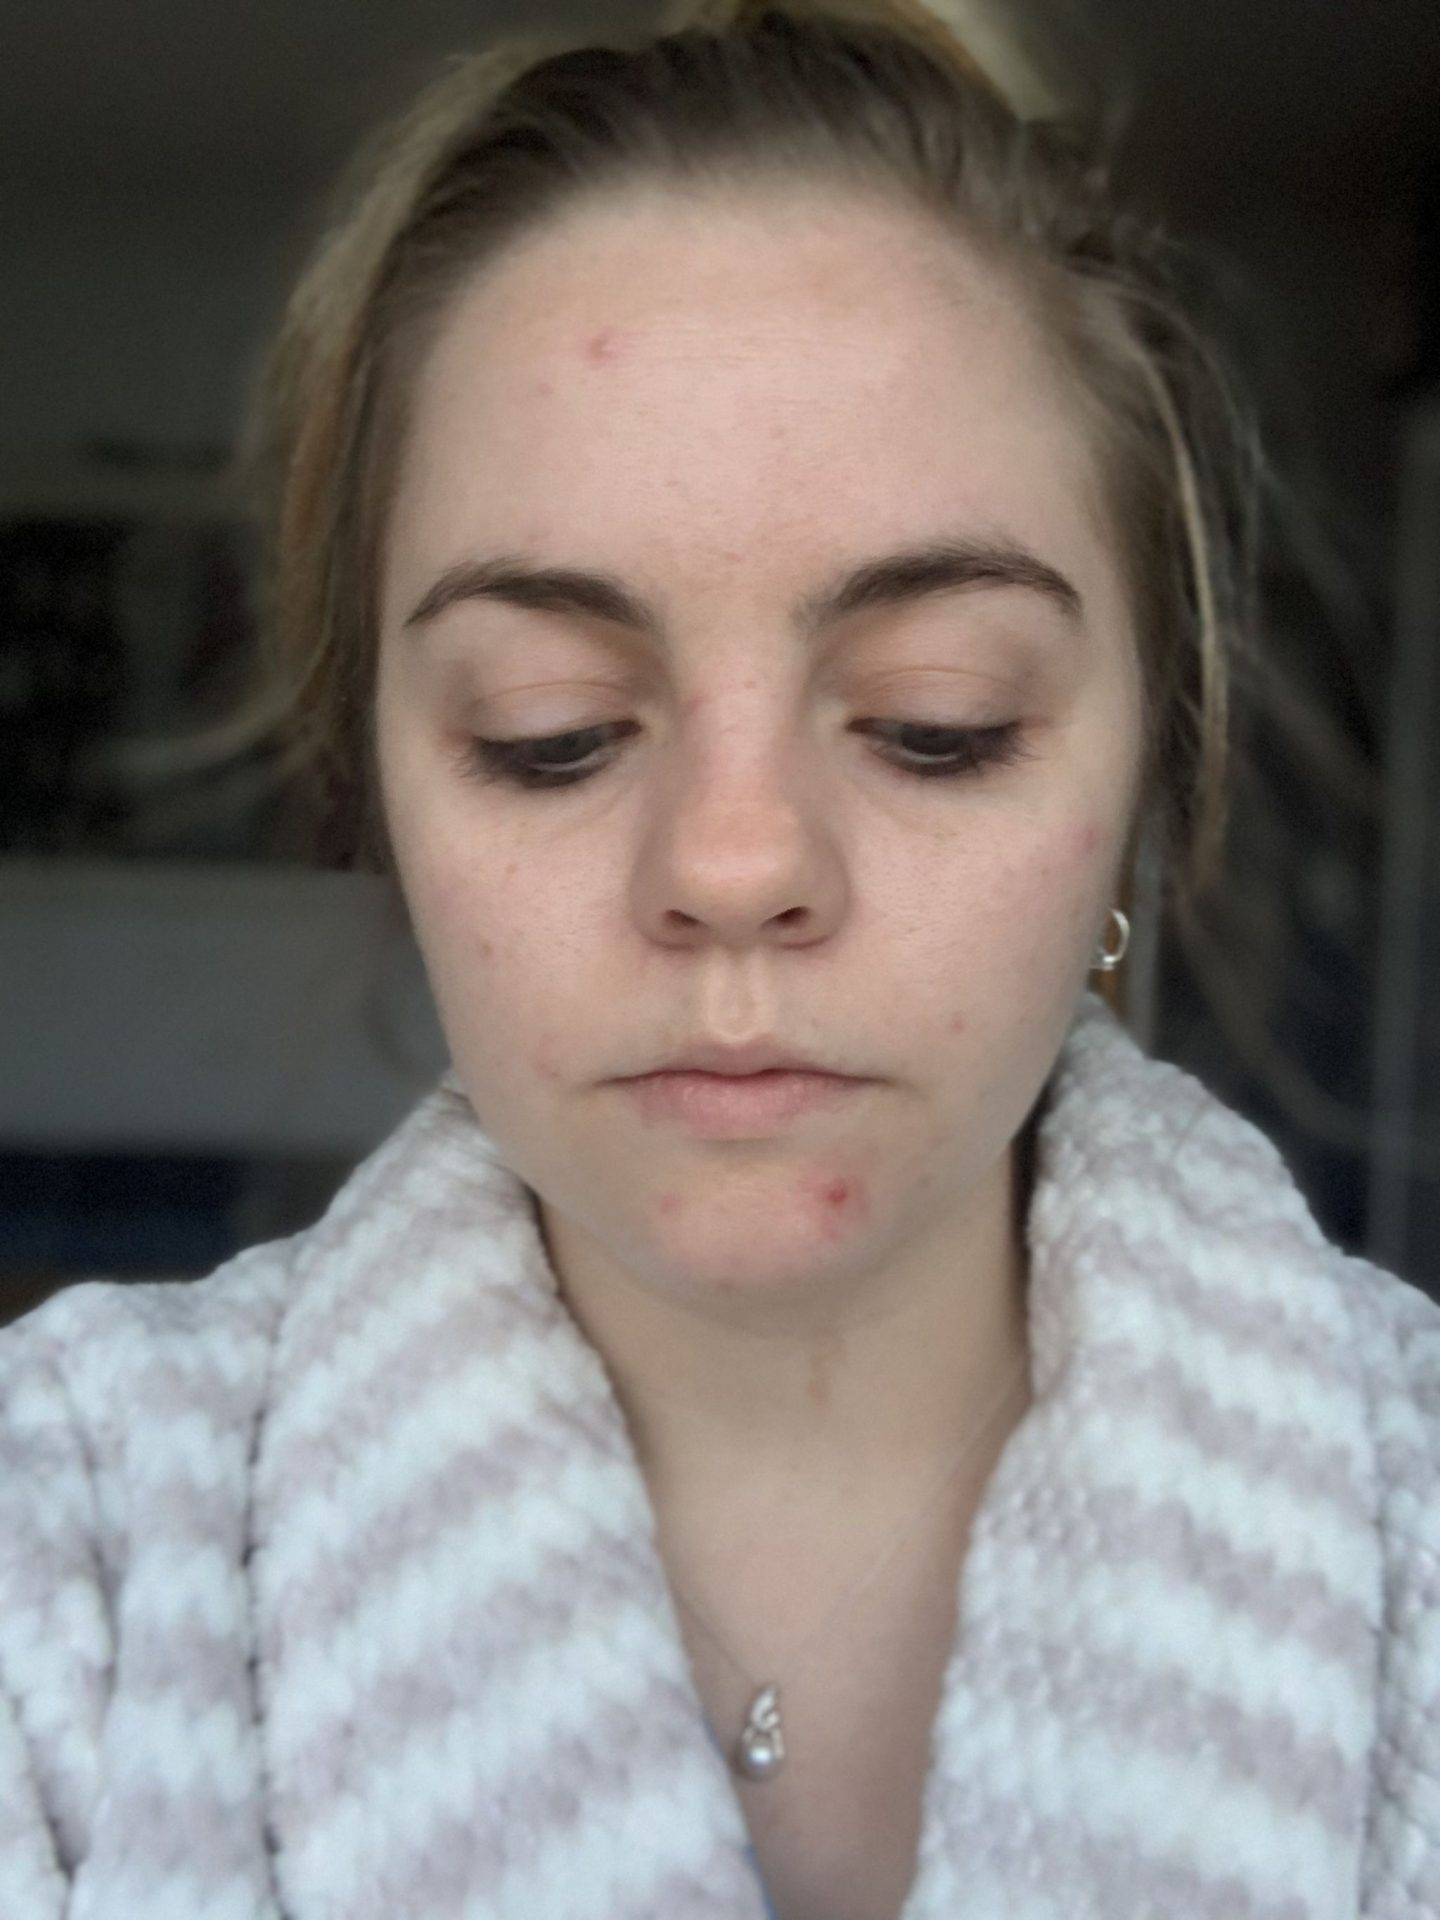 Coping with adult acne – one year on